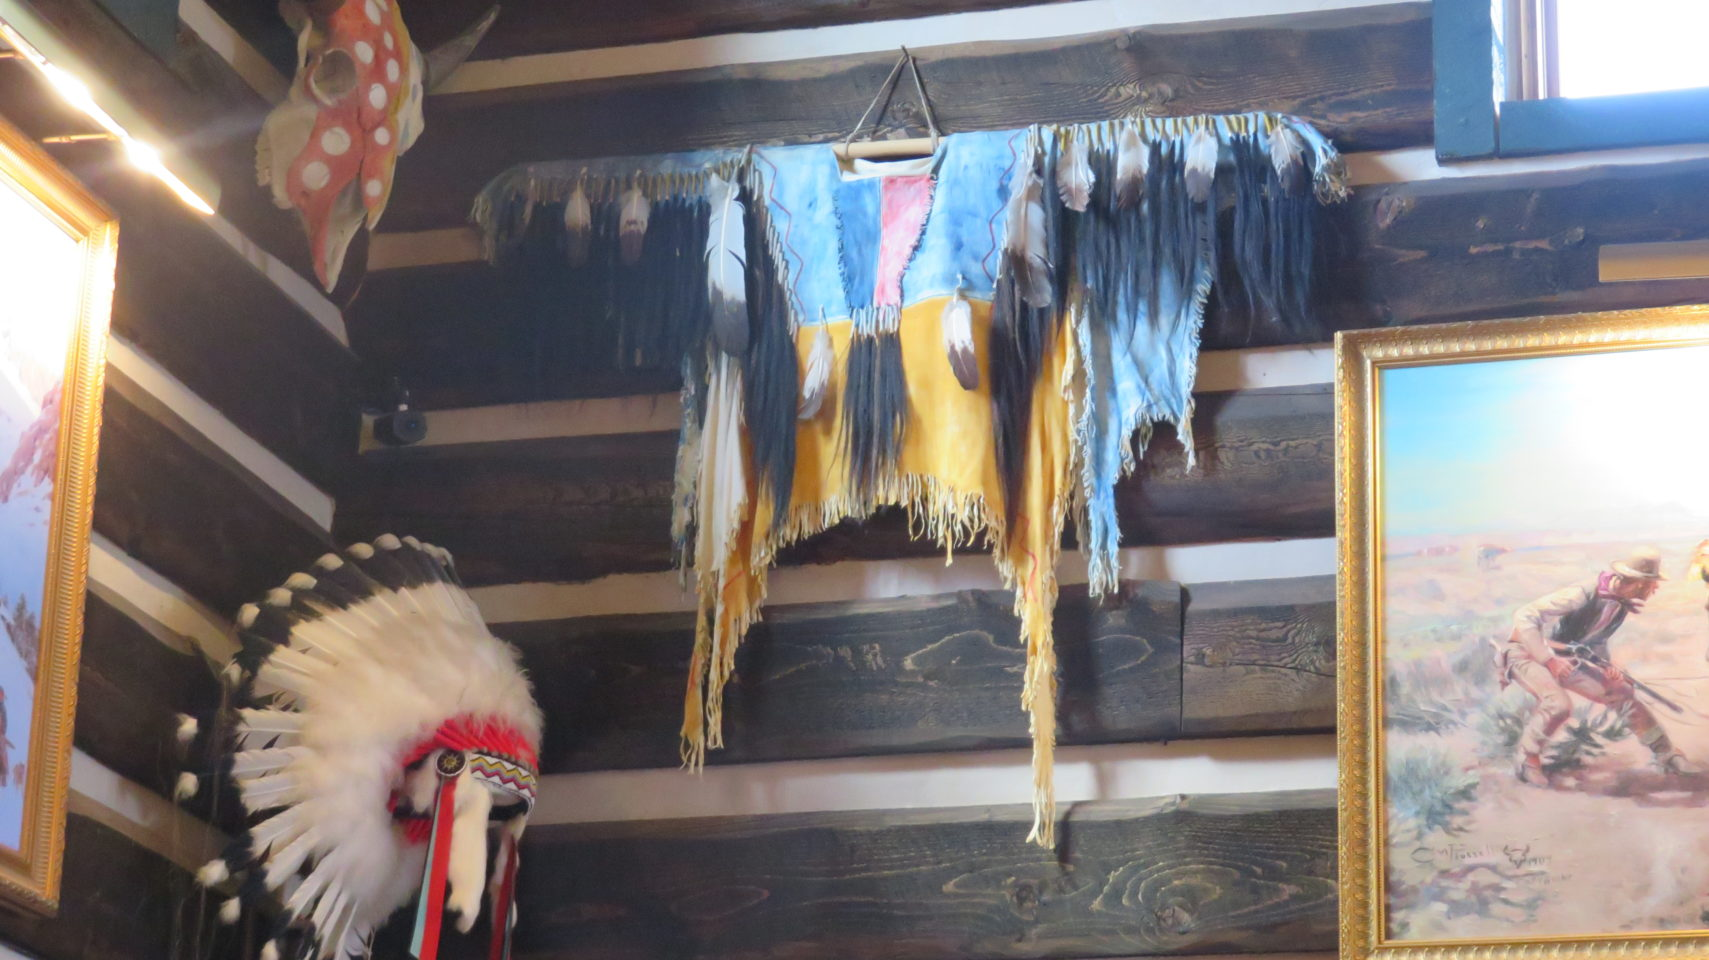 Broadmoor art treasures, including Native American Garb worn by Kostner in his blockbuster film, Dances with Wolves. A gift from Kevin Kostner.